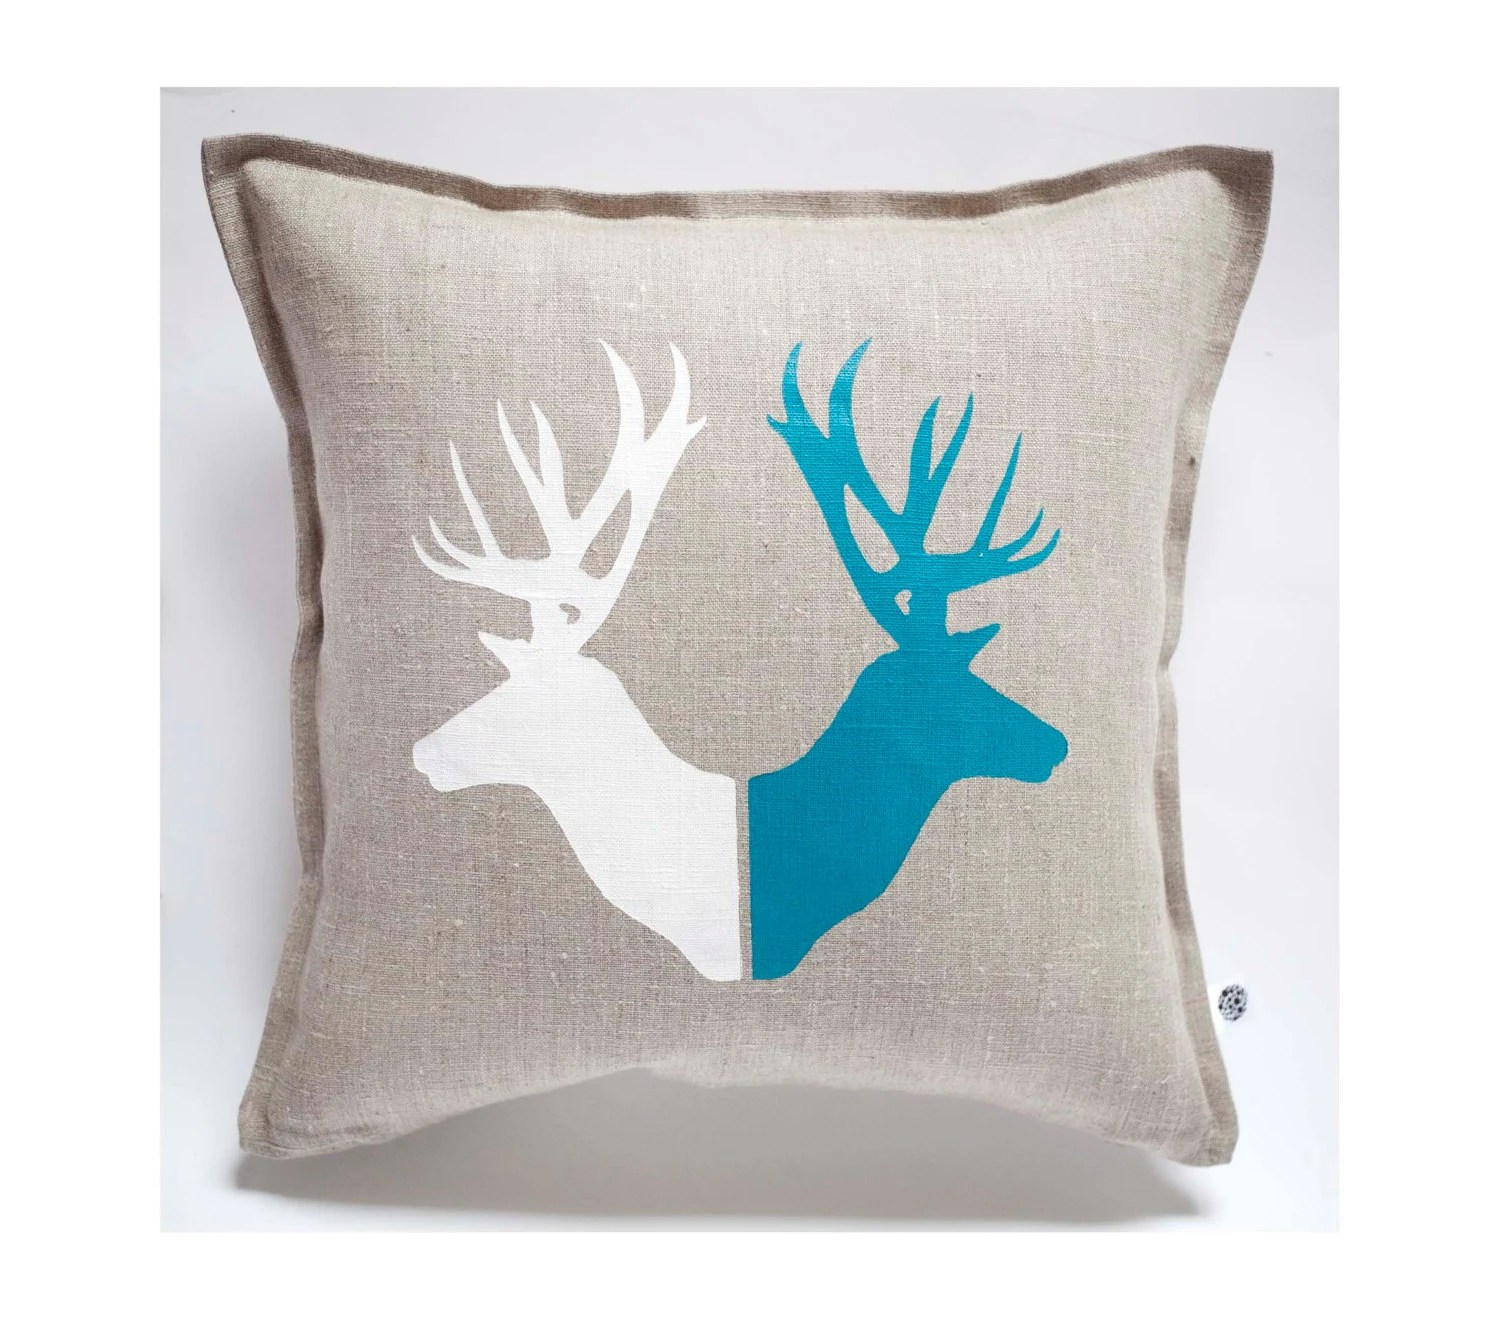 deer print sofa covers lugnvik bed with chaise granan black review pillow cover hand painted on gray linen